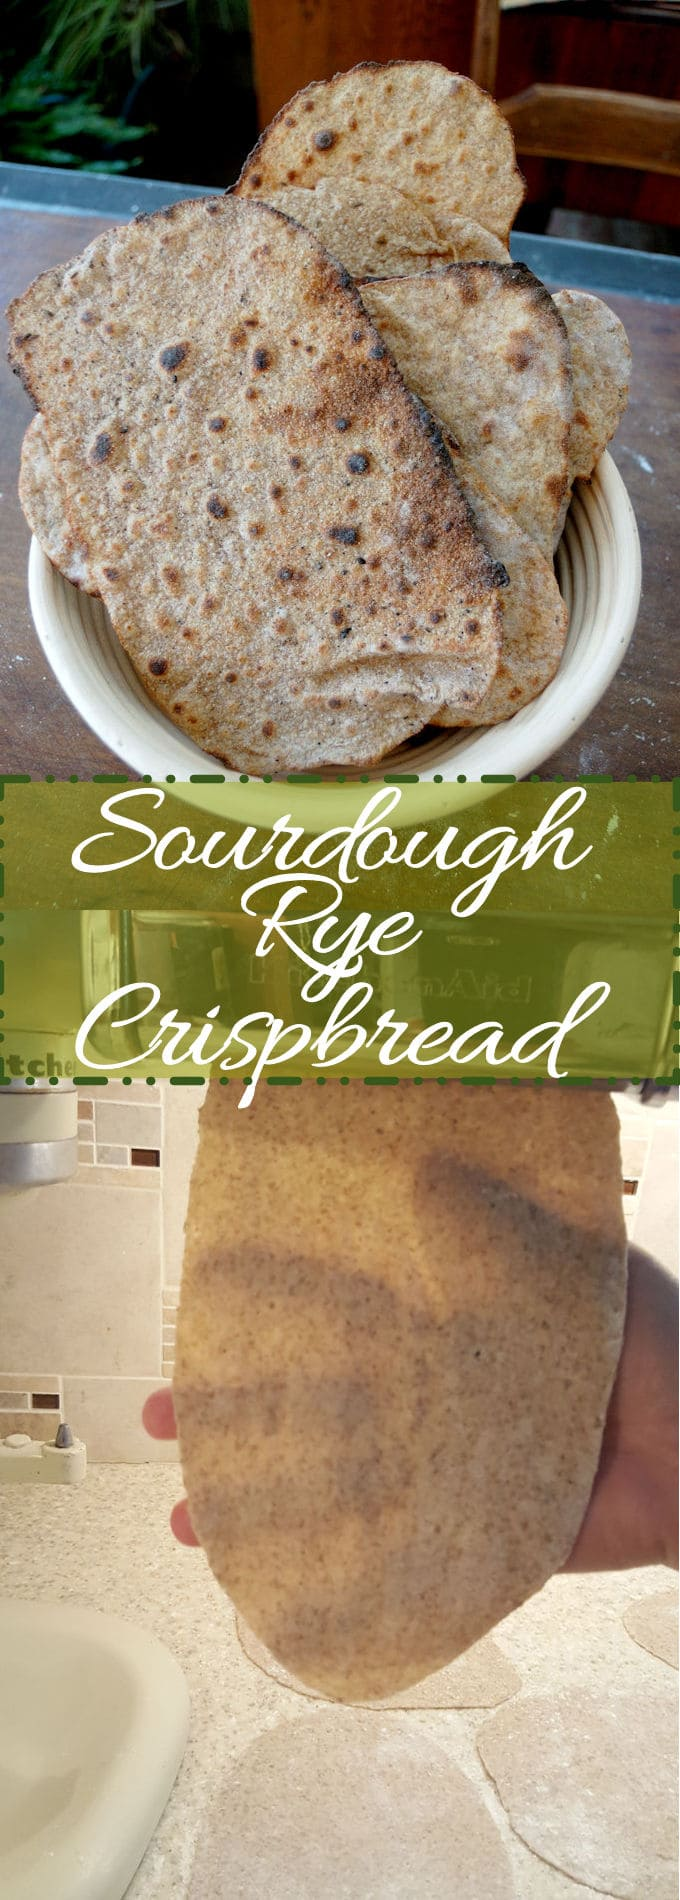 Sourdough rye crispbread is super thin, crispy and savory. Perfect for a snack or with a bowl of soup.